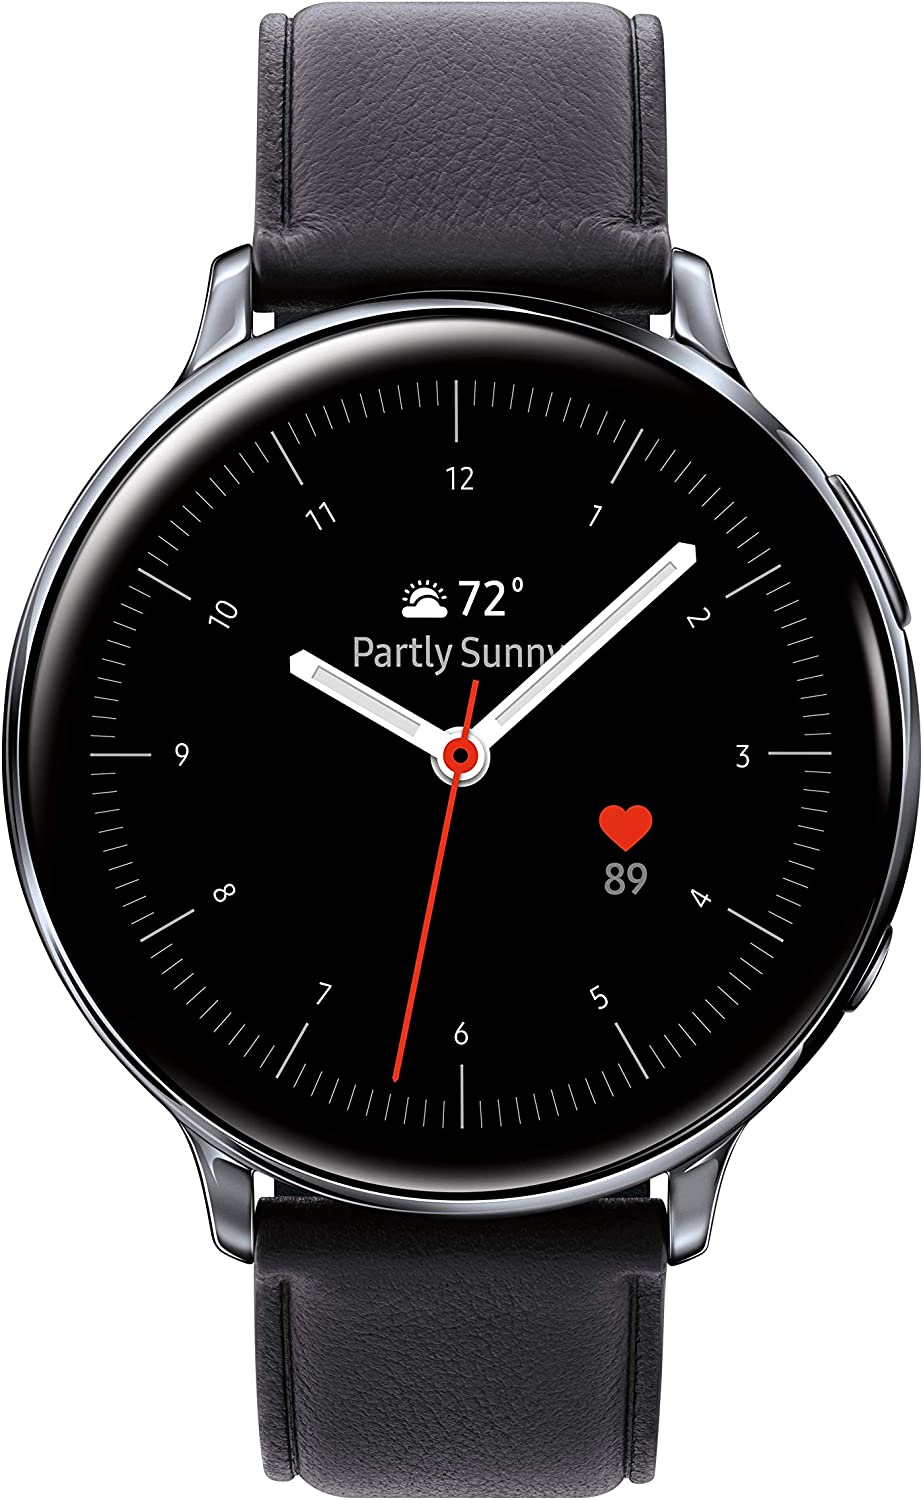 SAMSUNG Galaxy Watch Active 2 (44mm, GPS, Bluetooth, Unlocked LTE) Smart Watch with Advanced Health monitoring, Fitness Tracking , and Long lasting Battery, Silver - (US Version)